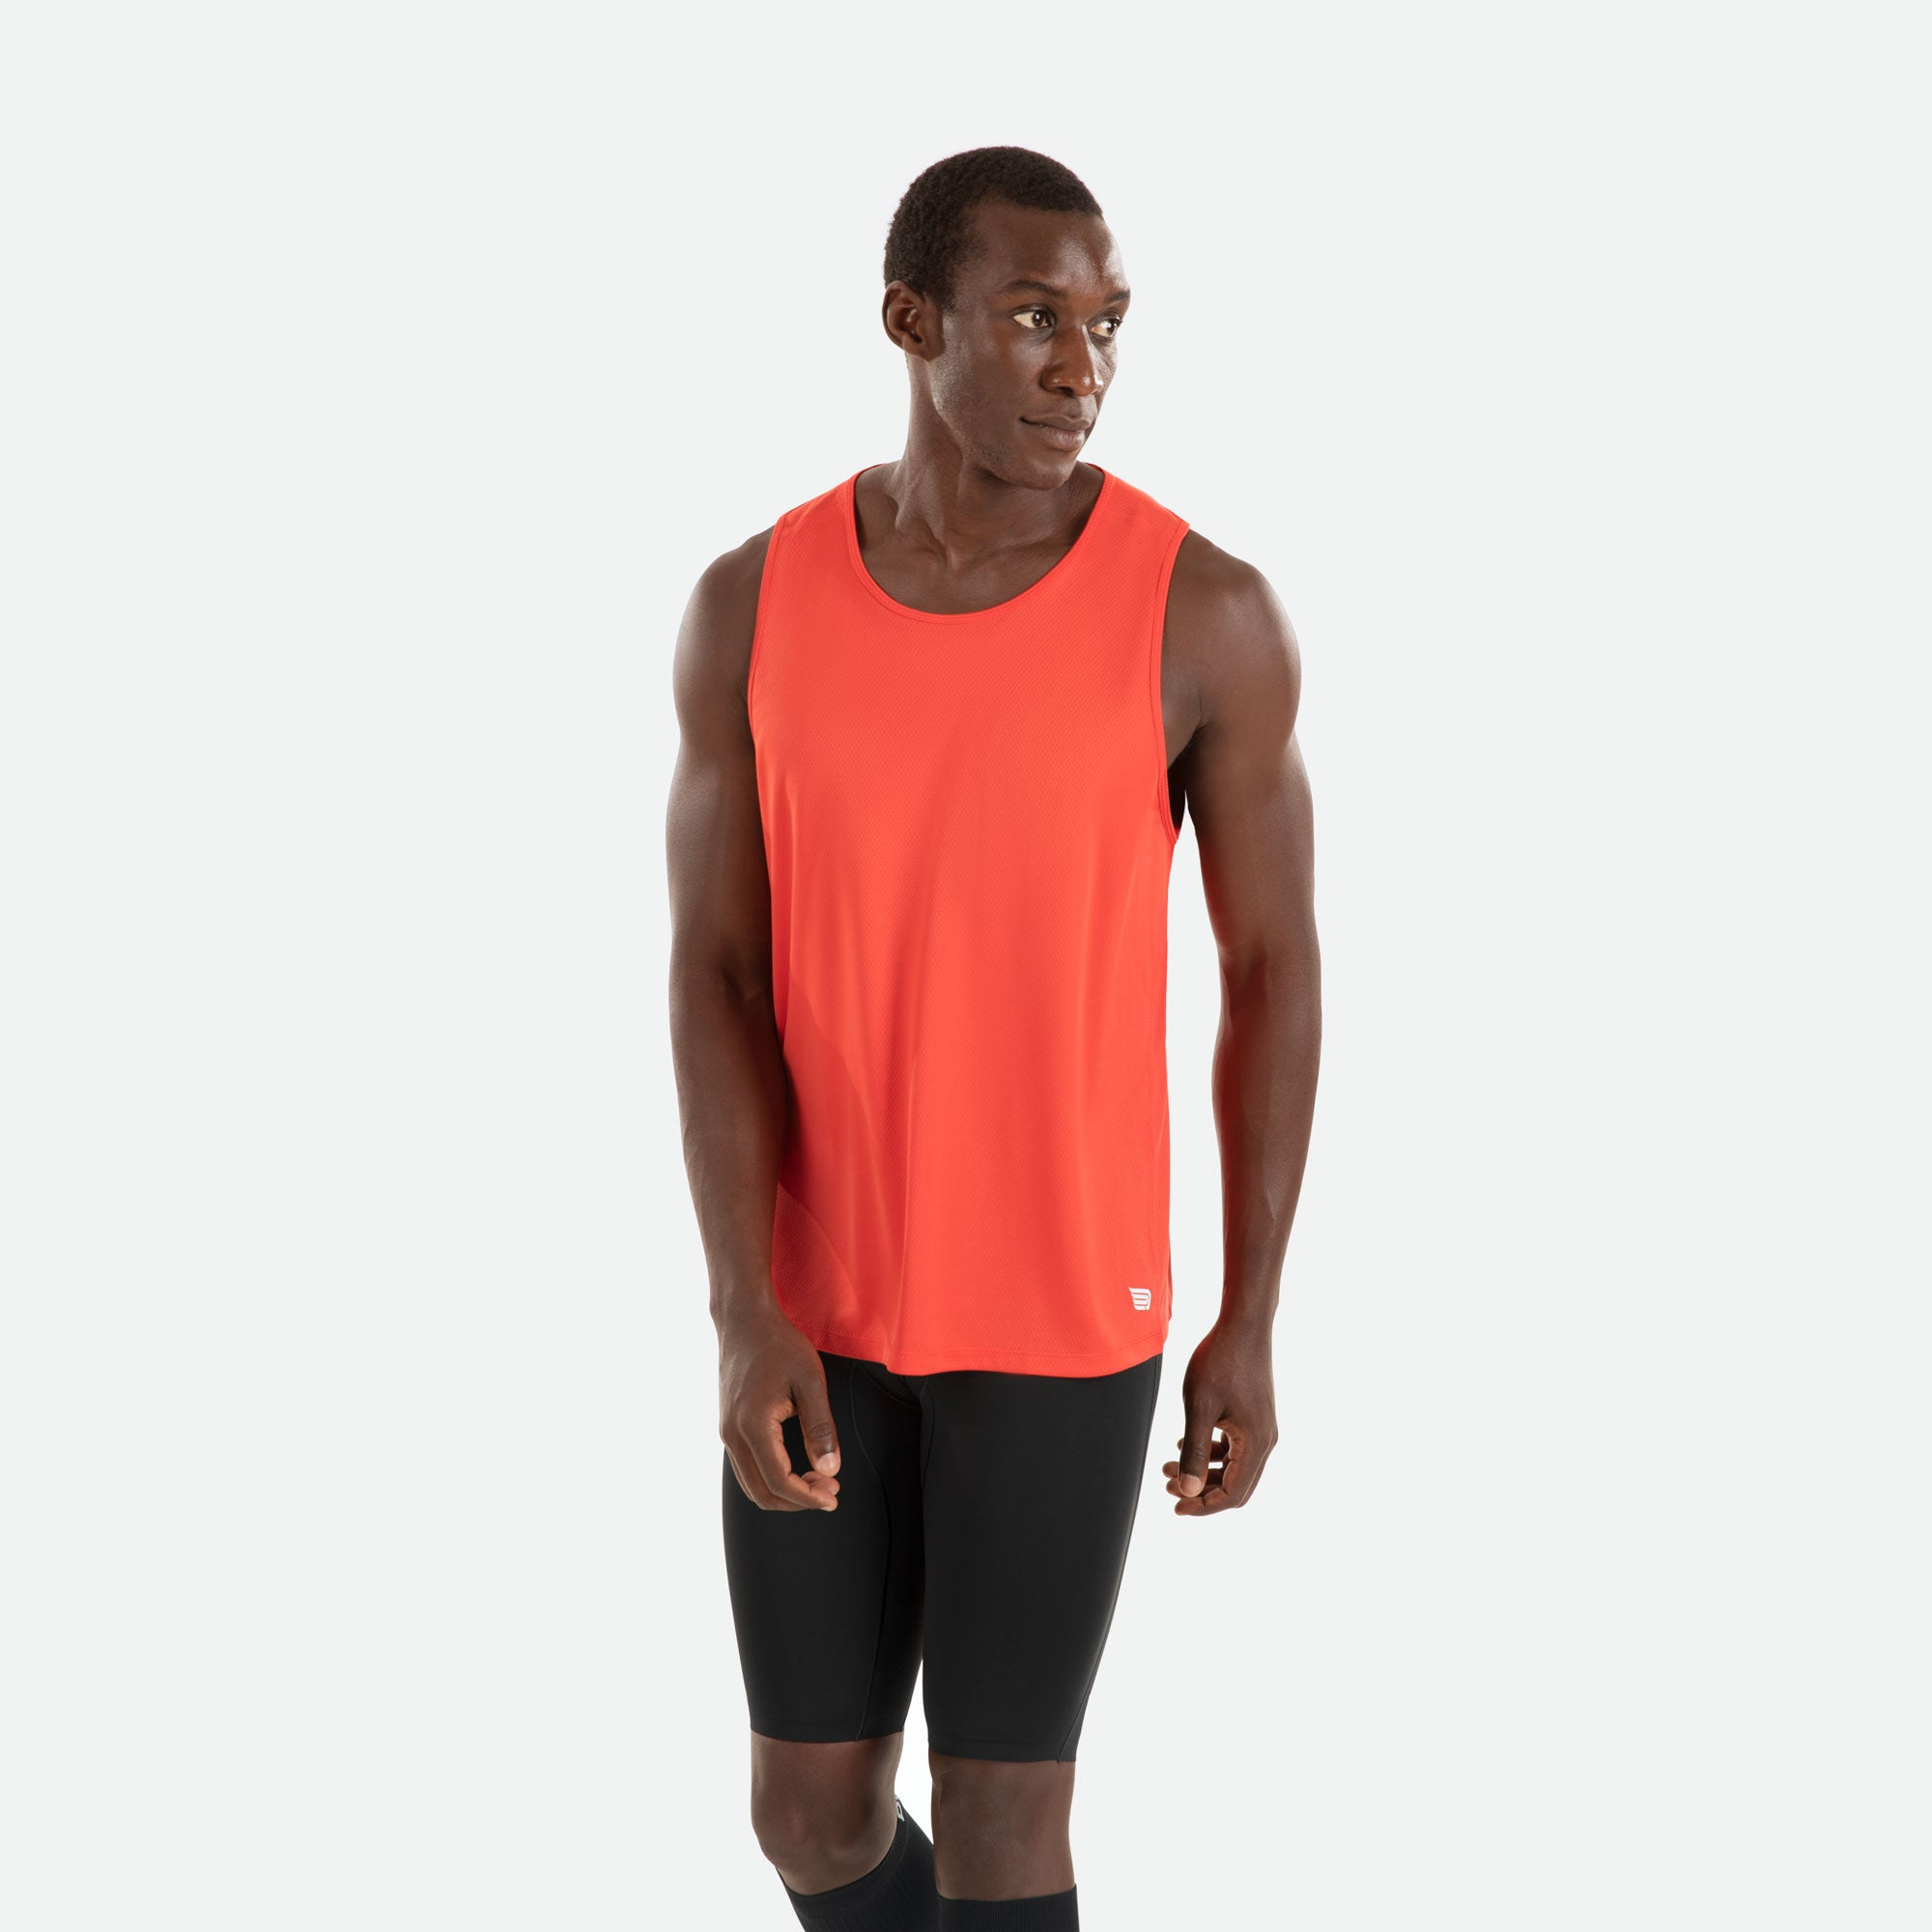 Our Pressio men's red Hāpai singlet features EcoTECH MF fabric which has dual filament recycled polyester yarns from Unifi for superior moisture control to keep you dry.